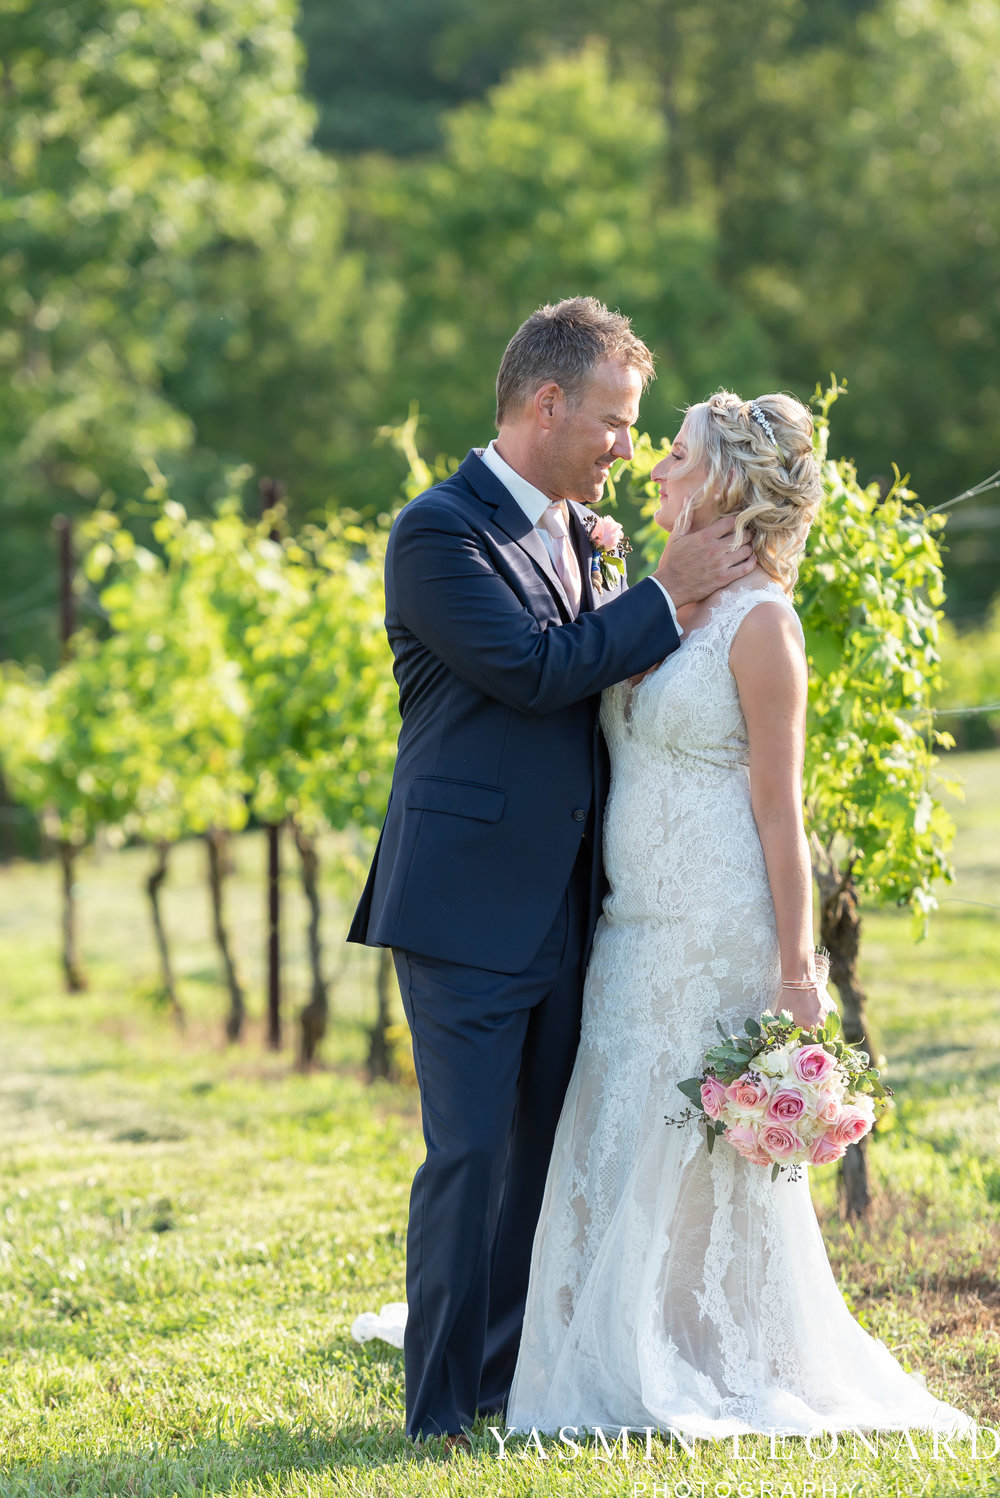 Elkin Creek Vineyard - Elkin Creek Weddings - NC Wine - NC Wineries - NC Weddings - NC Photographers - NC Wedding Photographer - NC Winery Wedding Ideas - Yasmin Leonard Photography - High Point Wedding Photographer-53.jpg